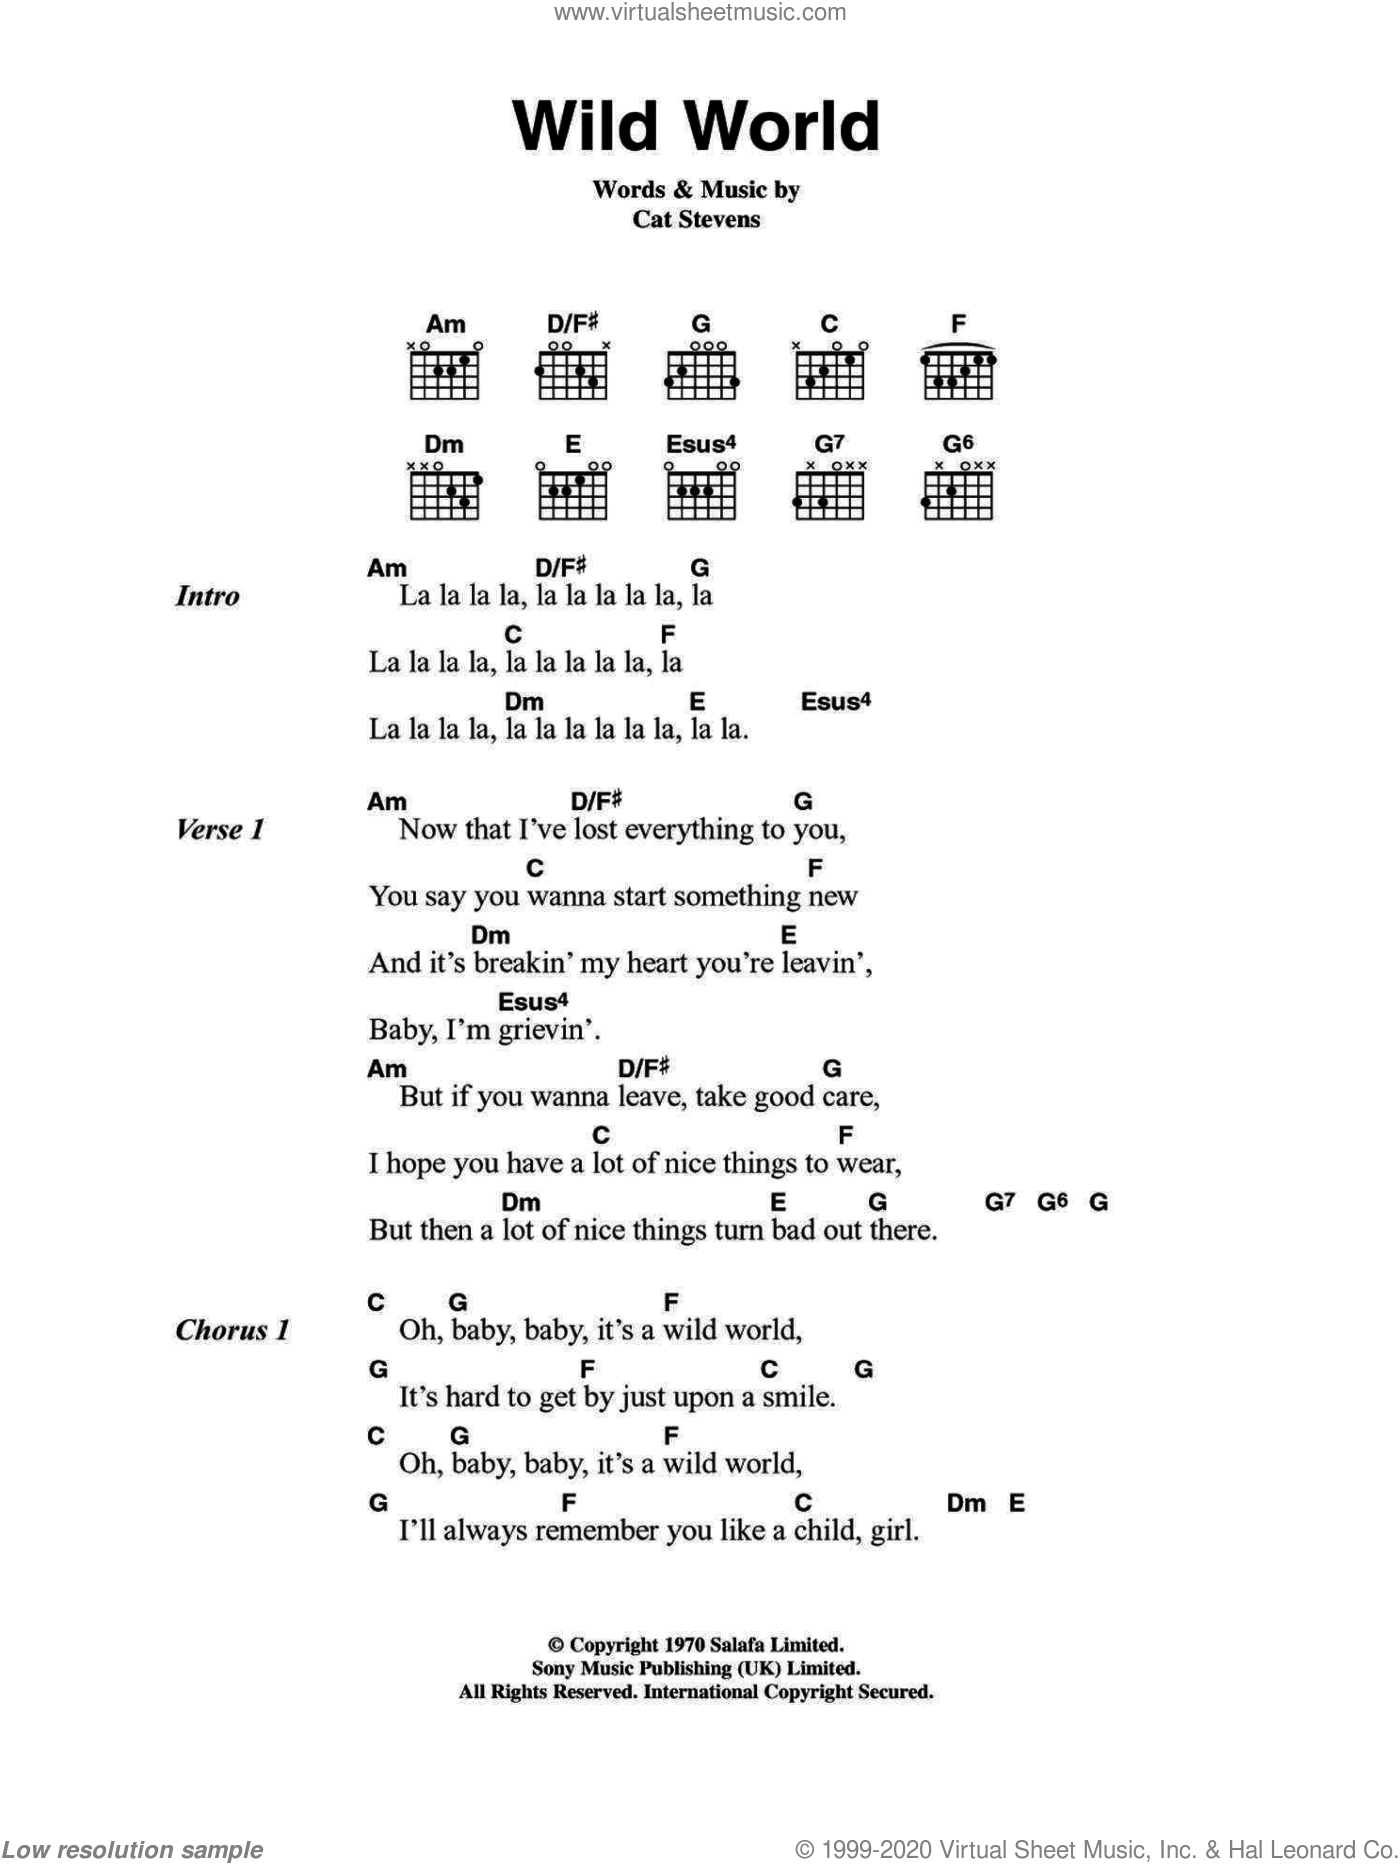 Wild World sheet music for guitar (chords) by Cat Stevens